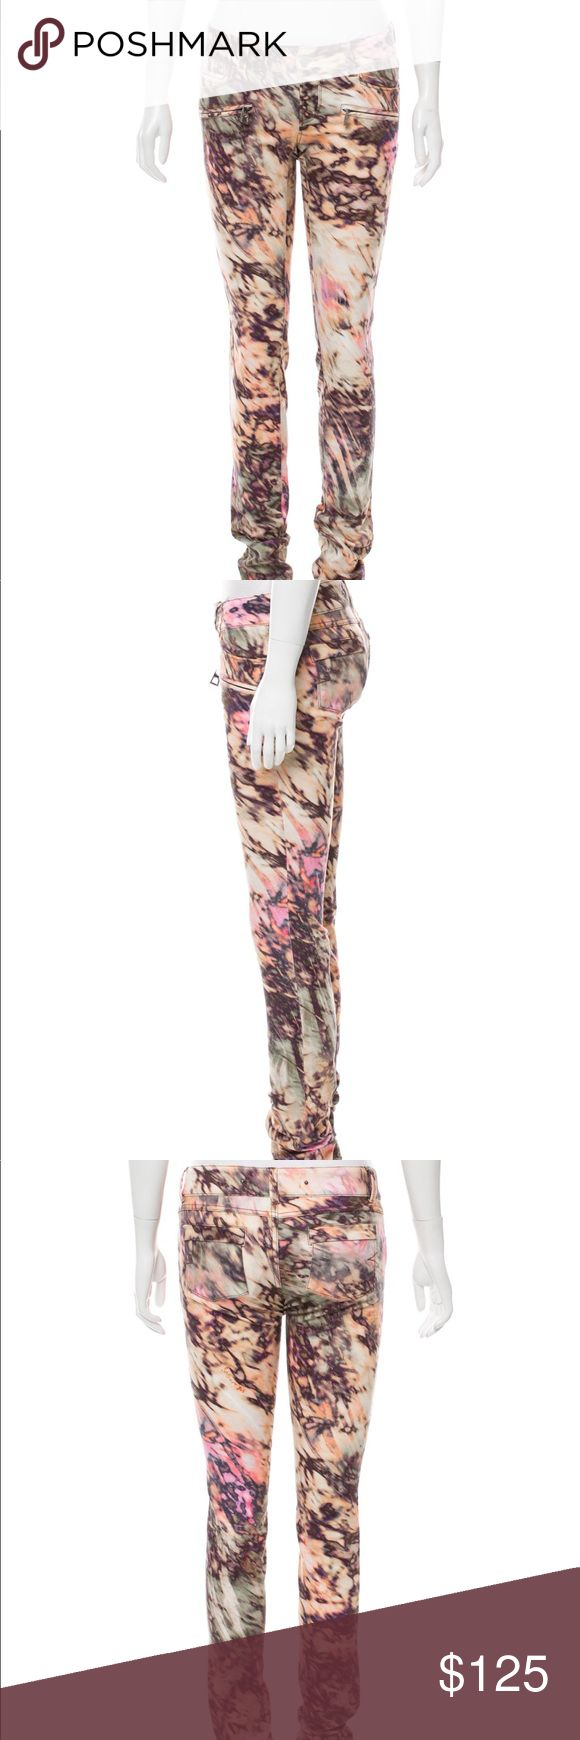 """⭐️ Barbara Bui Pink Abstract Printed Skinny Jeans Pink and multicolored Barbara Bui low rise skinny jeans. Five pockets, with dual zip accents on upper thigh. Fly zipper closure.  97% Cotton 3% Elastane   30"""" Waist  32"""" Hips 7"""" Rise  11"""" Leg Opening  36"""" Inseam Barbara Bui Jeans Skinny"""